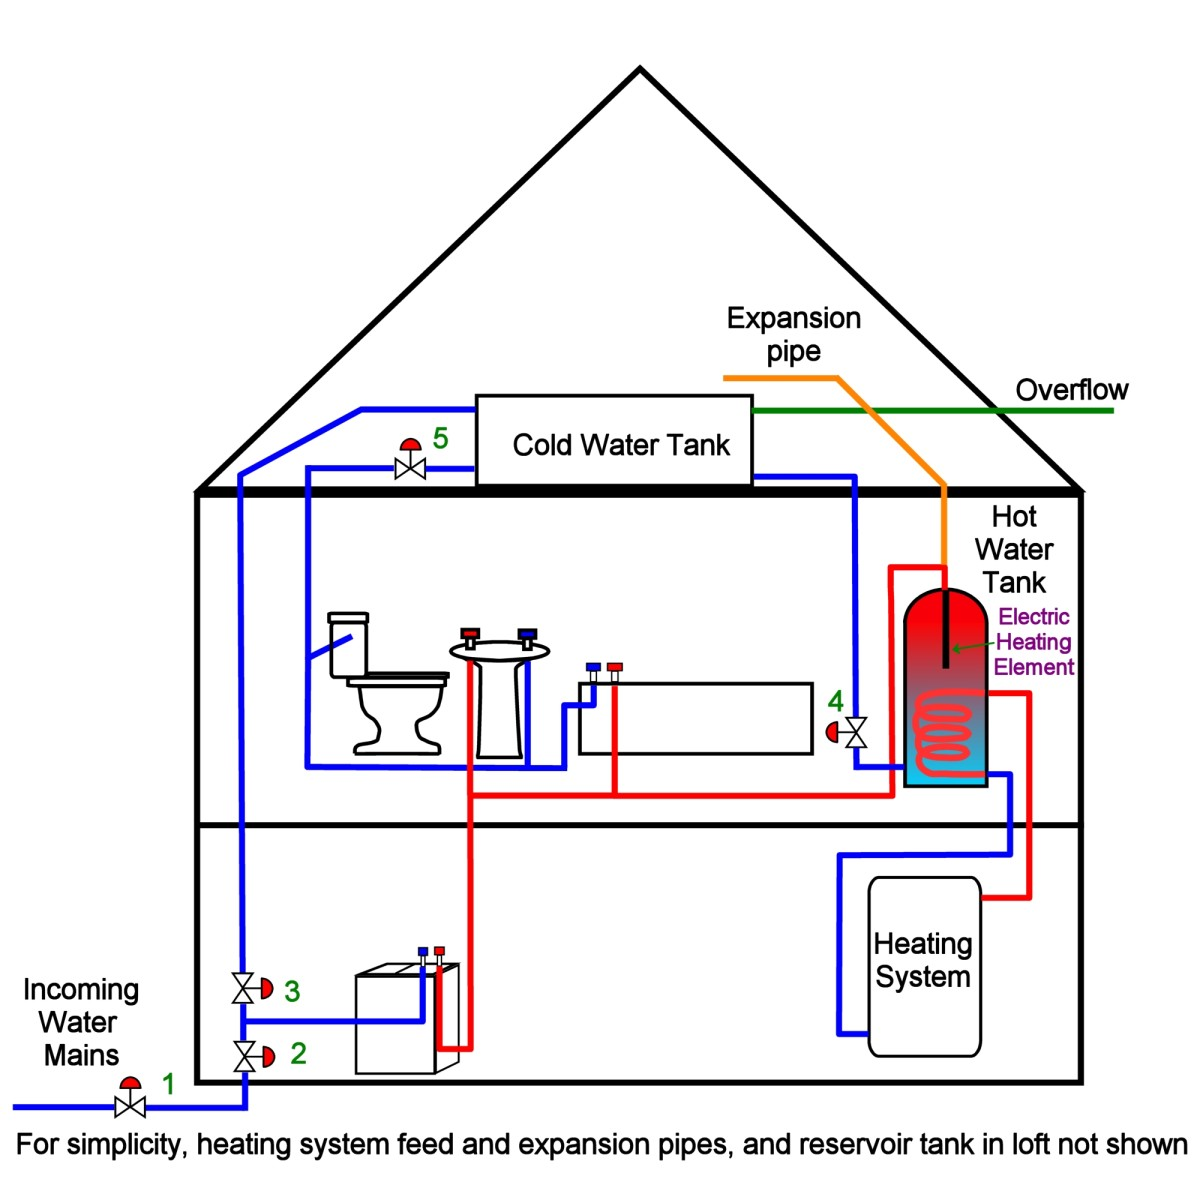 Schematic of basic plumbing system in the home